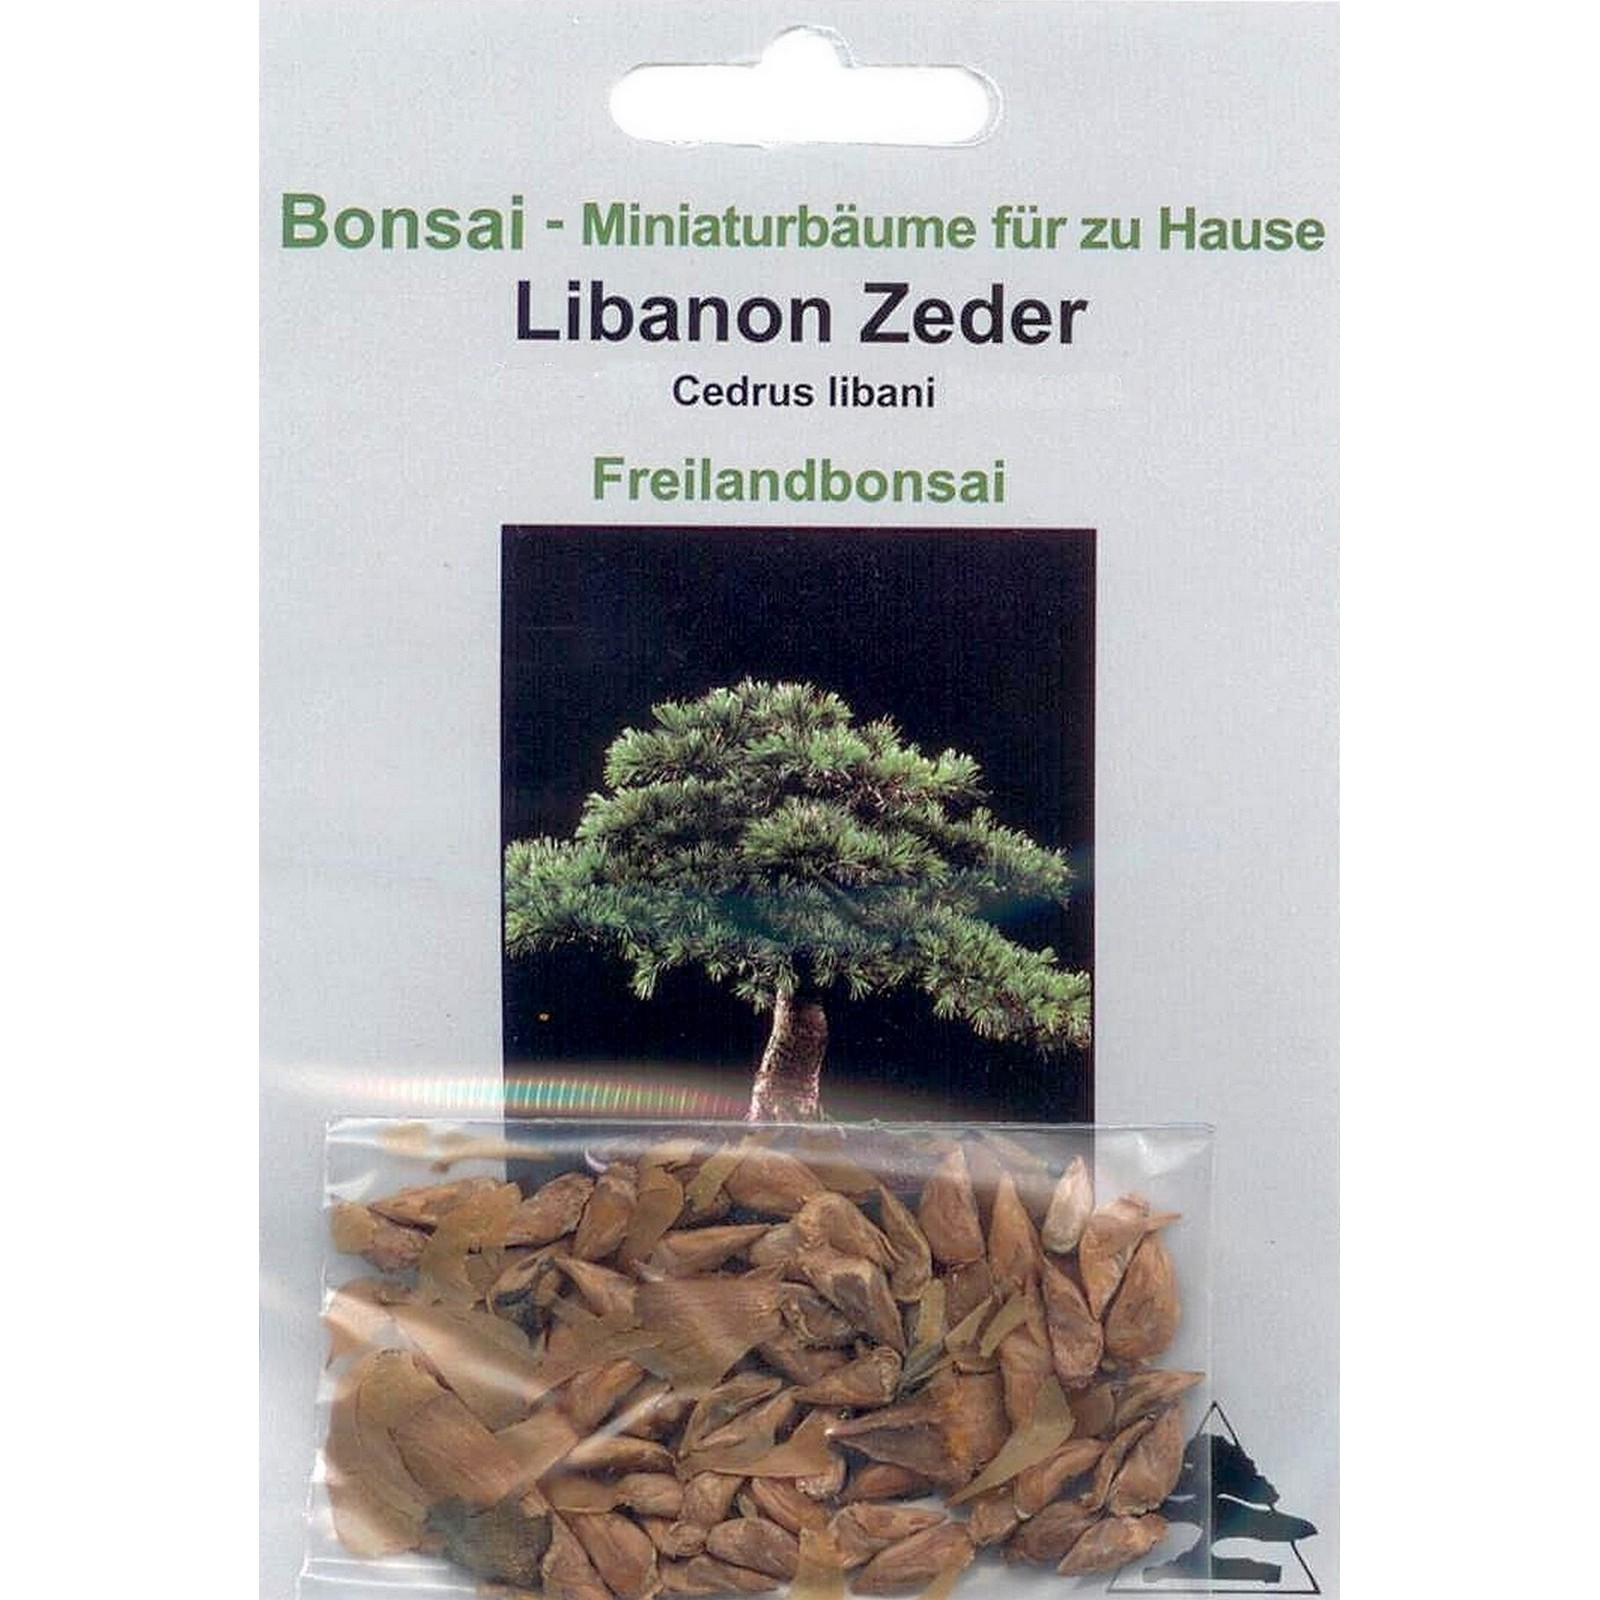 Bonsai lebanon zeder investments api access project investments with high returns